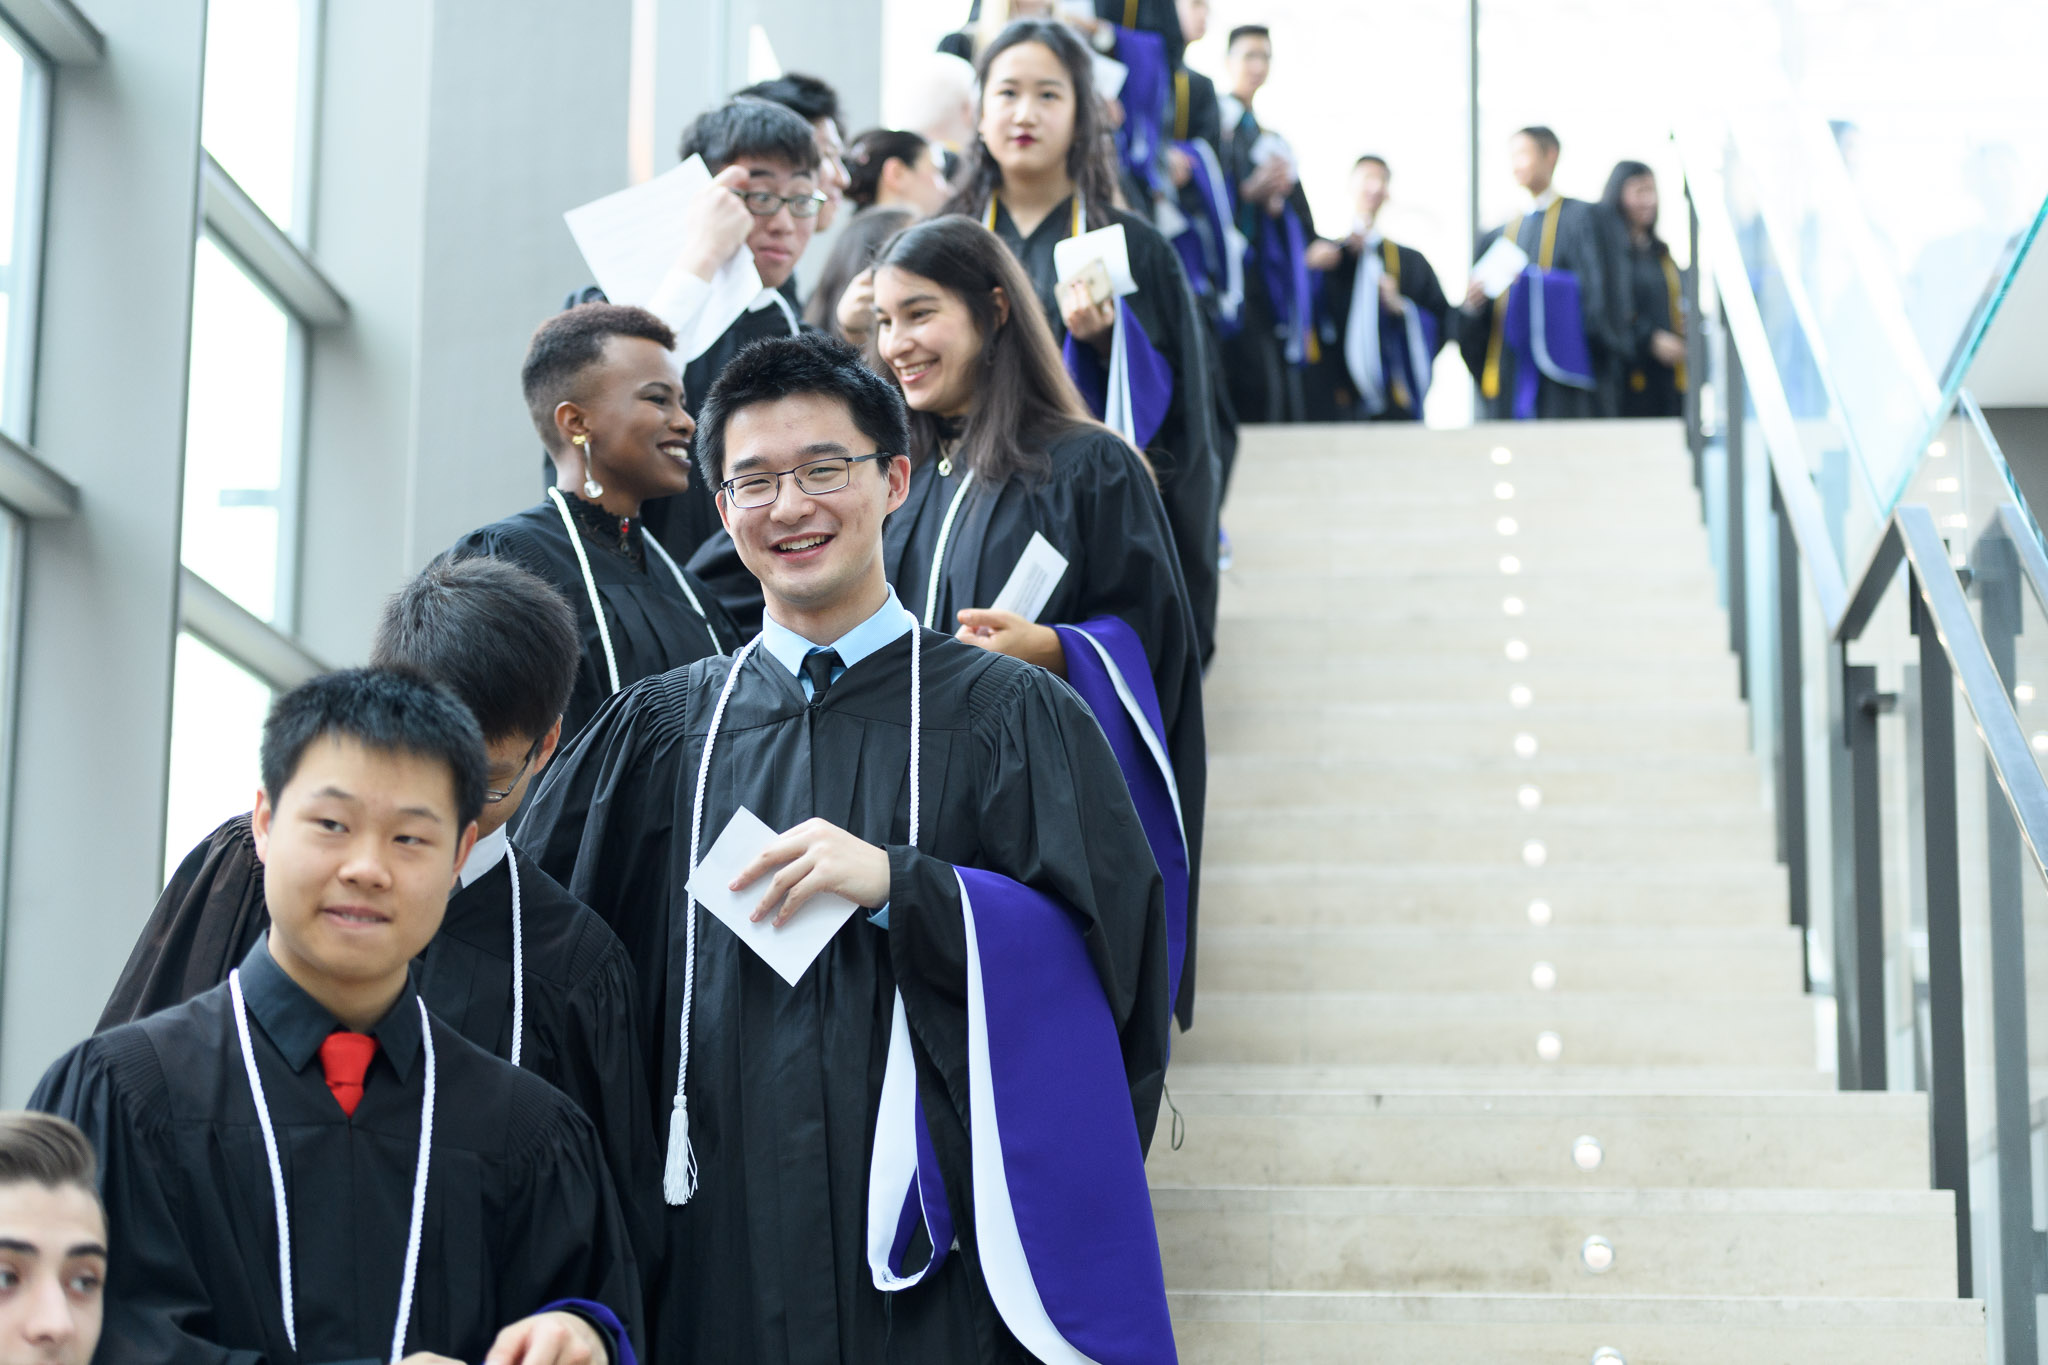 Convocation scene